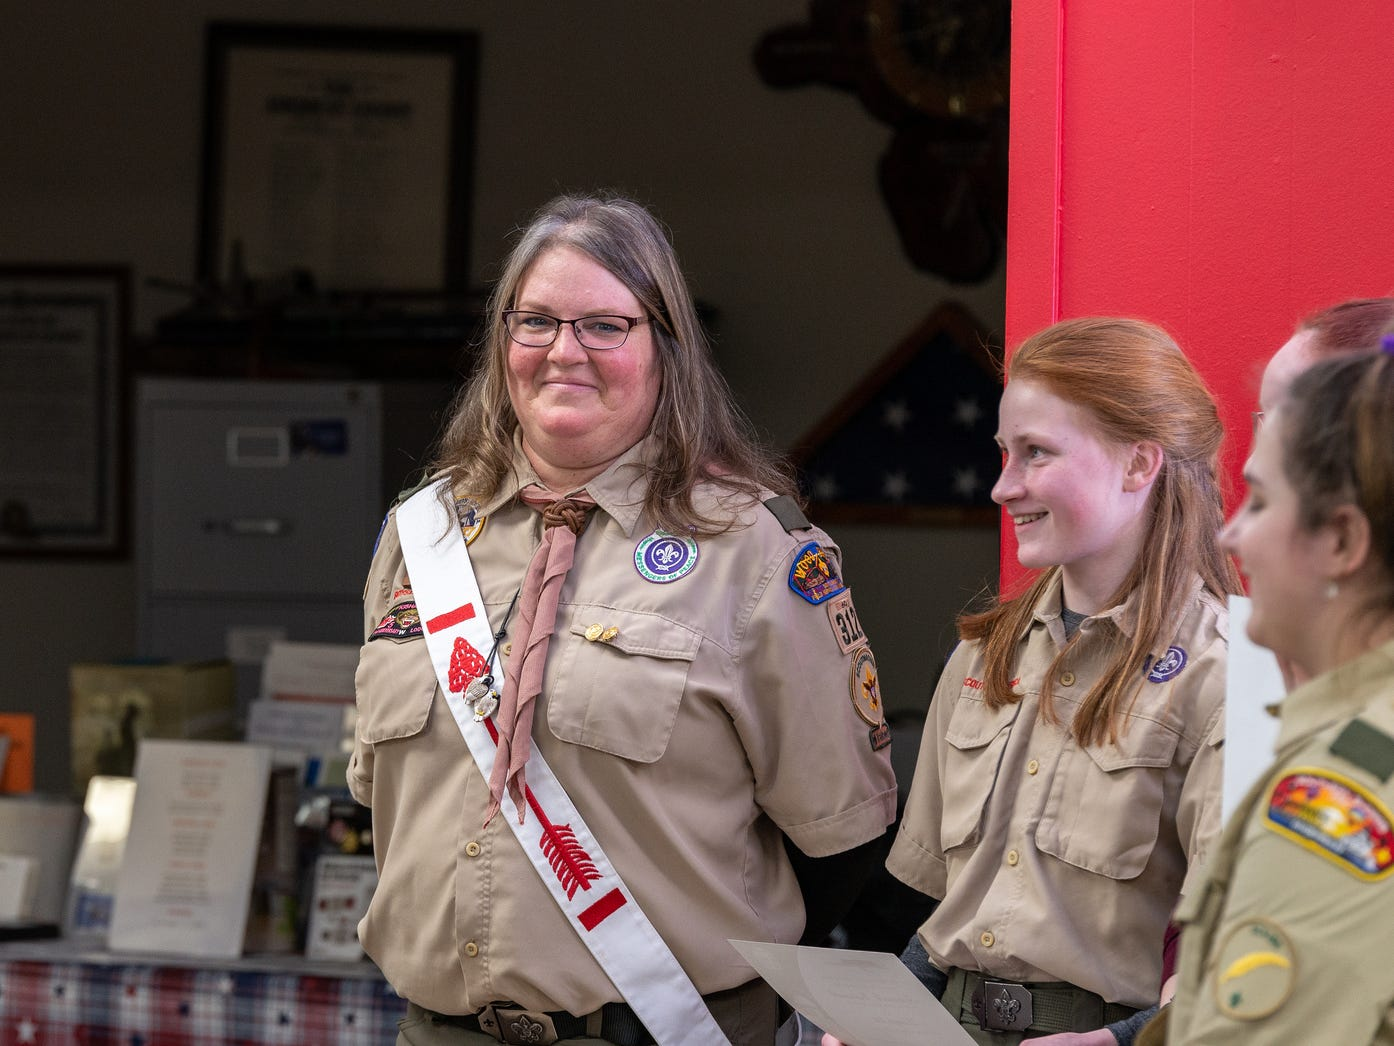 Heather Hudson, the new Troop 310 Scout Master smiles during the inauguration ceremony Monday Feb. 18, 2019.